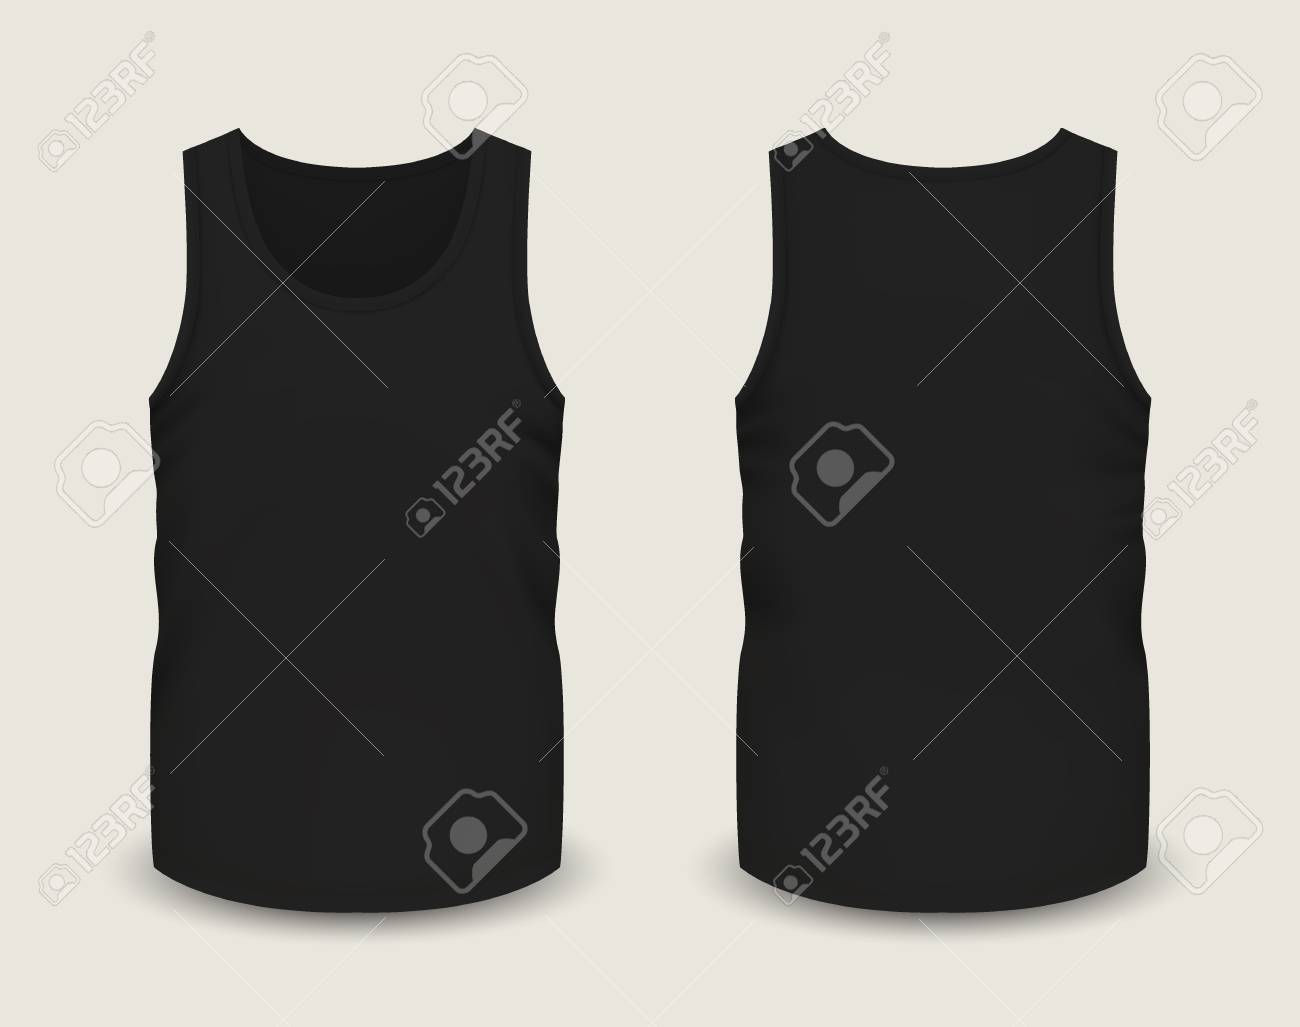 d6afdea80e5ac Mens black sleeveless tank in front and back views. Vector illustration  with realistic male shirt